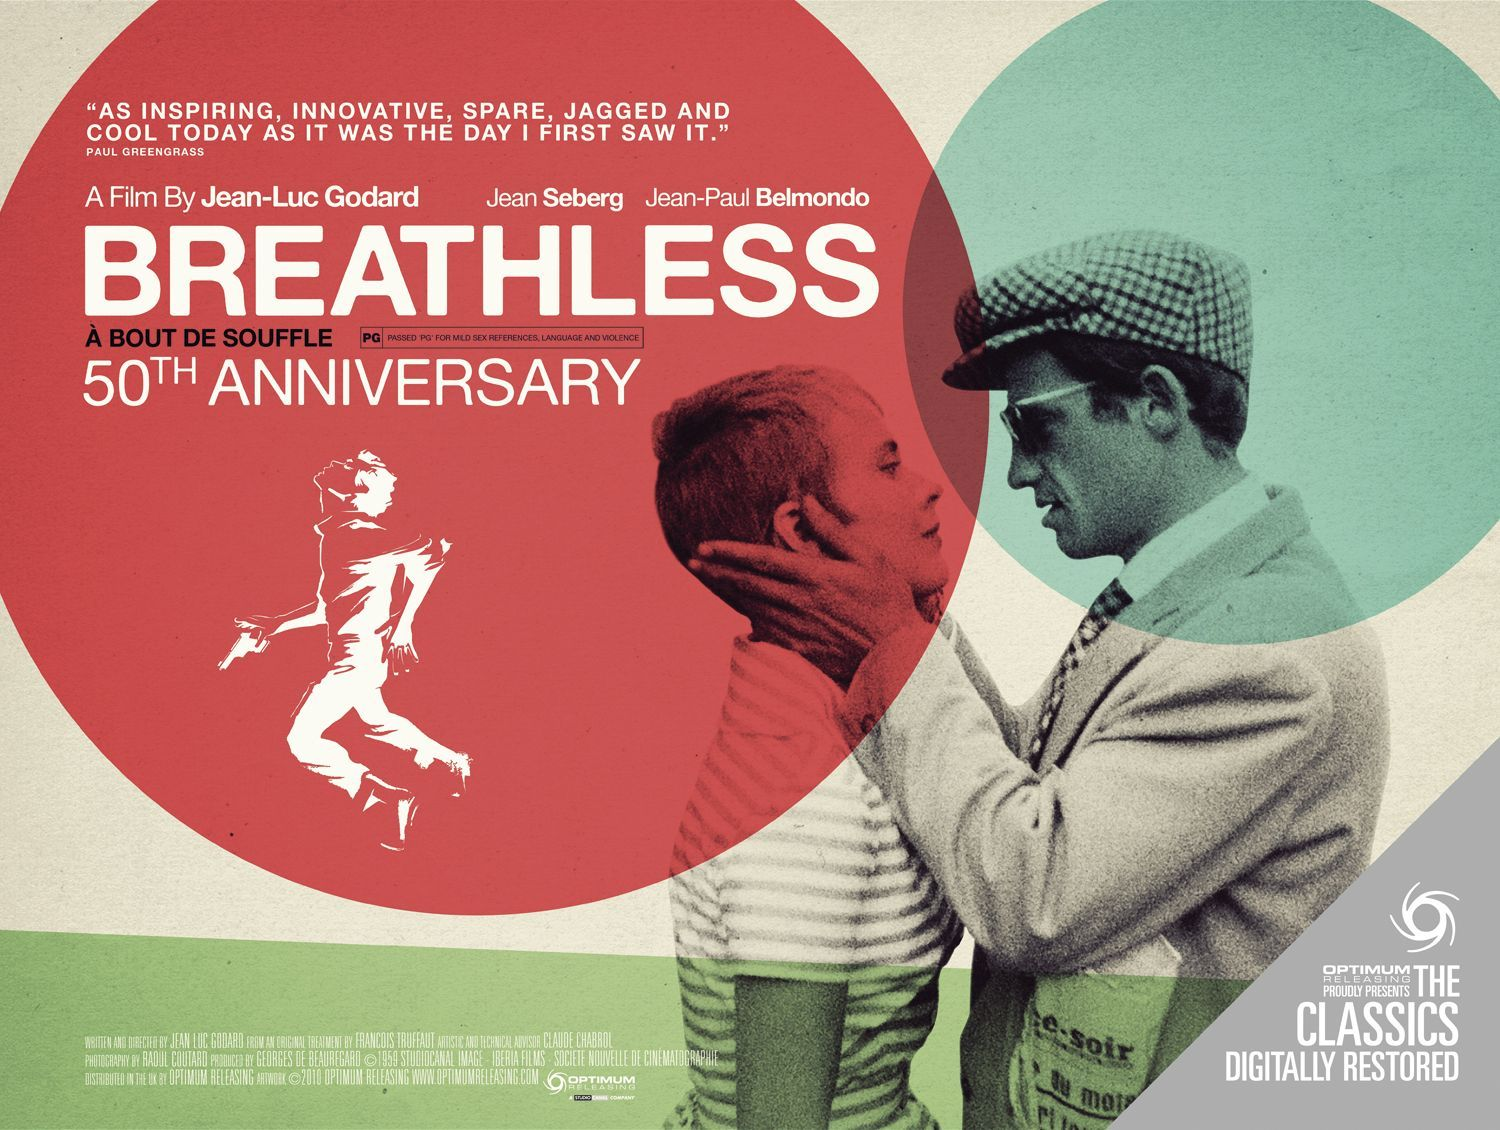 breathless 50th anniversary poster